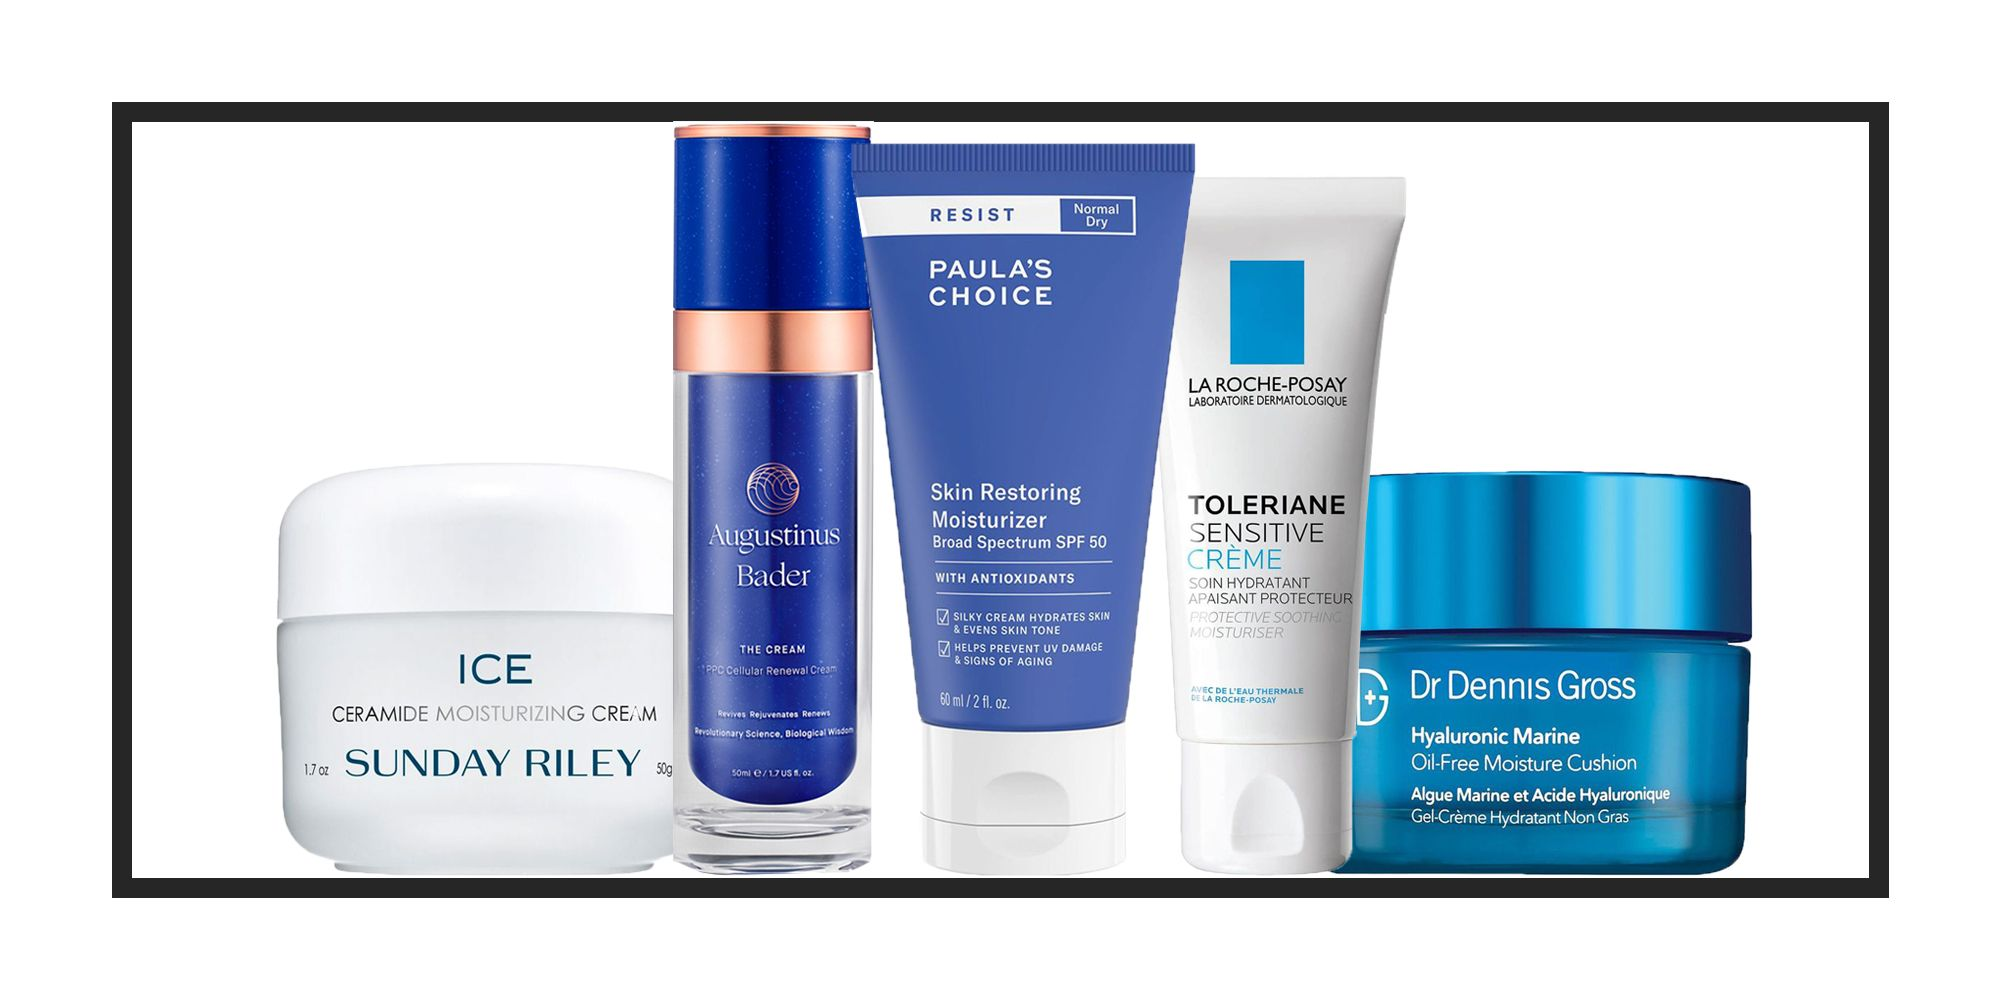 Top 10 Best La Roche Posay Products